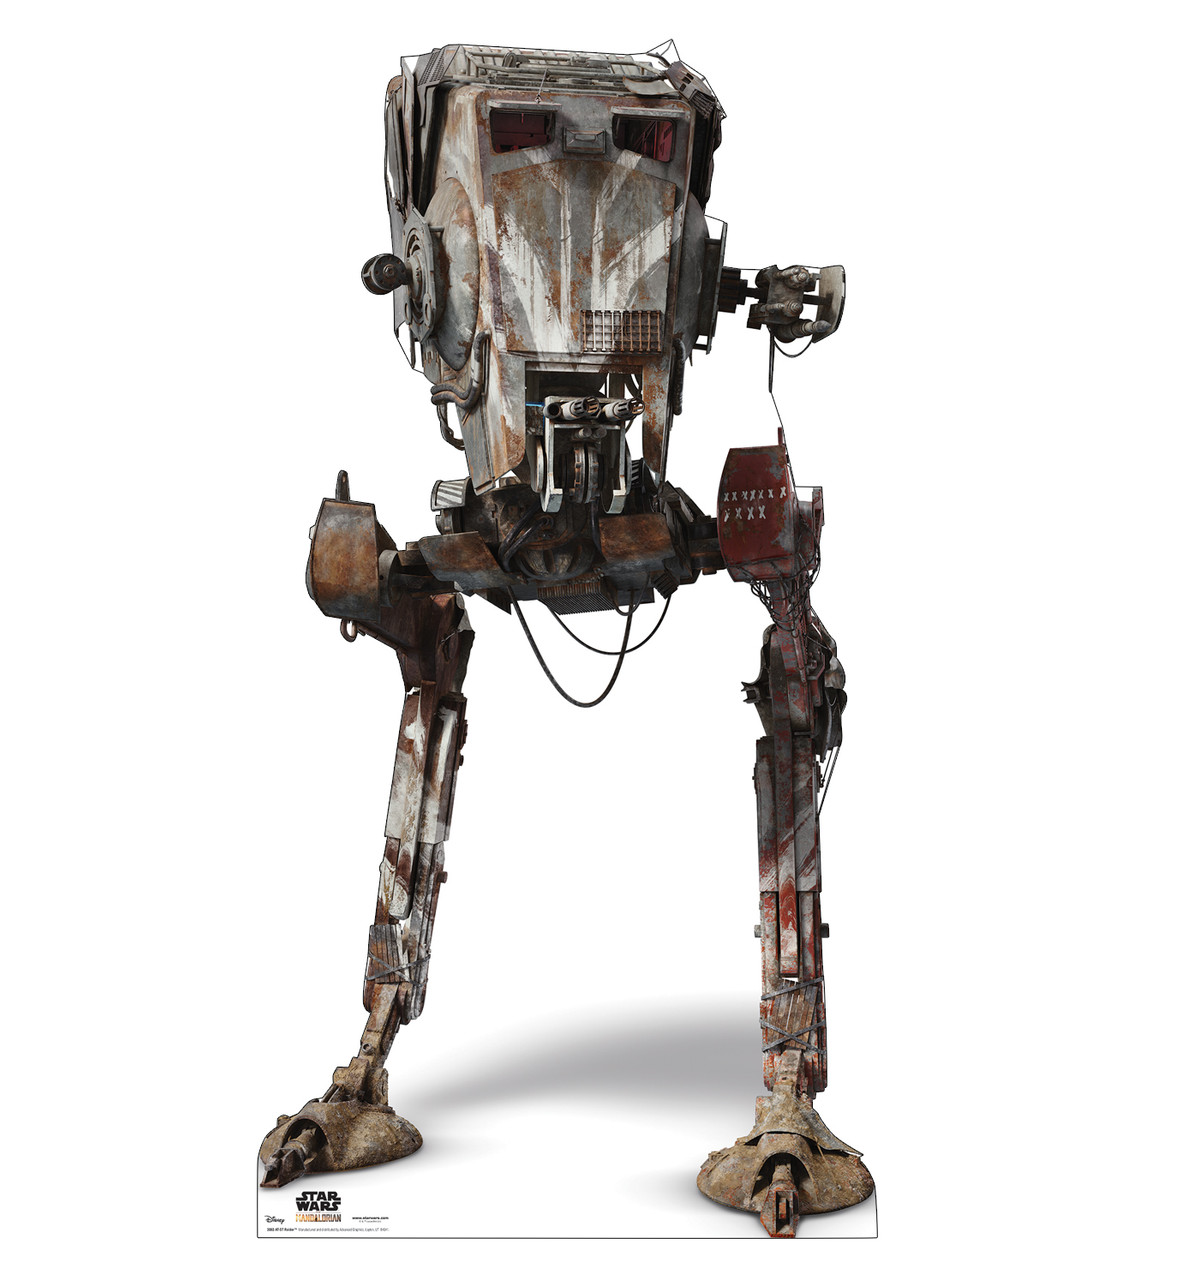 Life-size cardboard standee of AT-ST Raider from The Mandalorian.